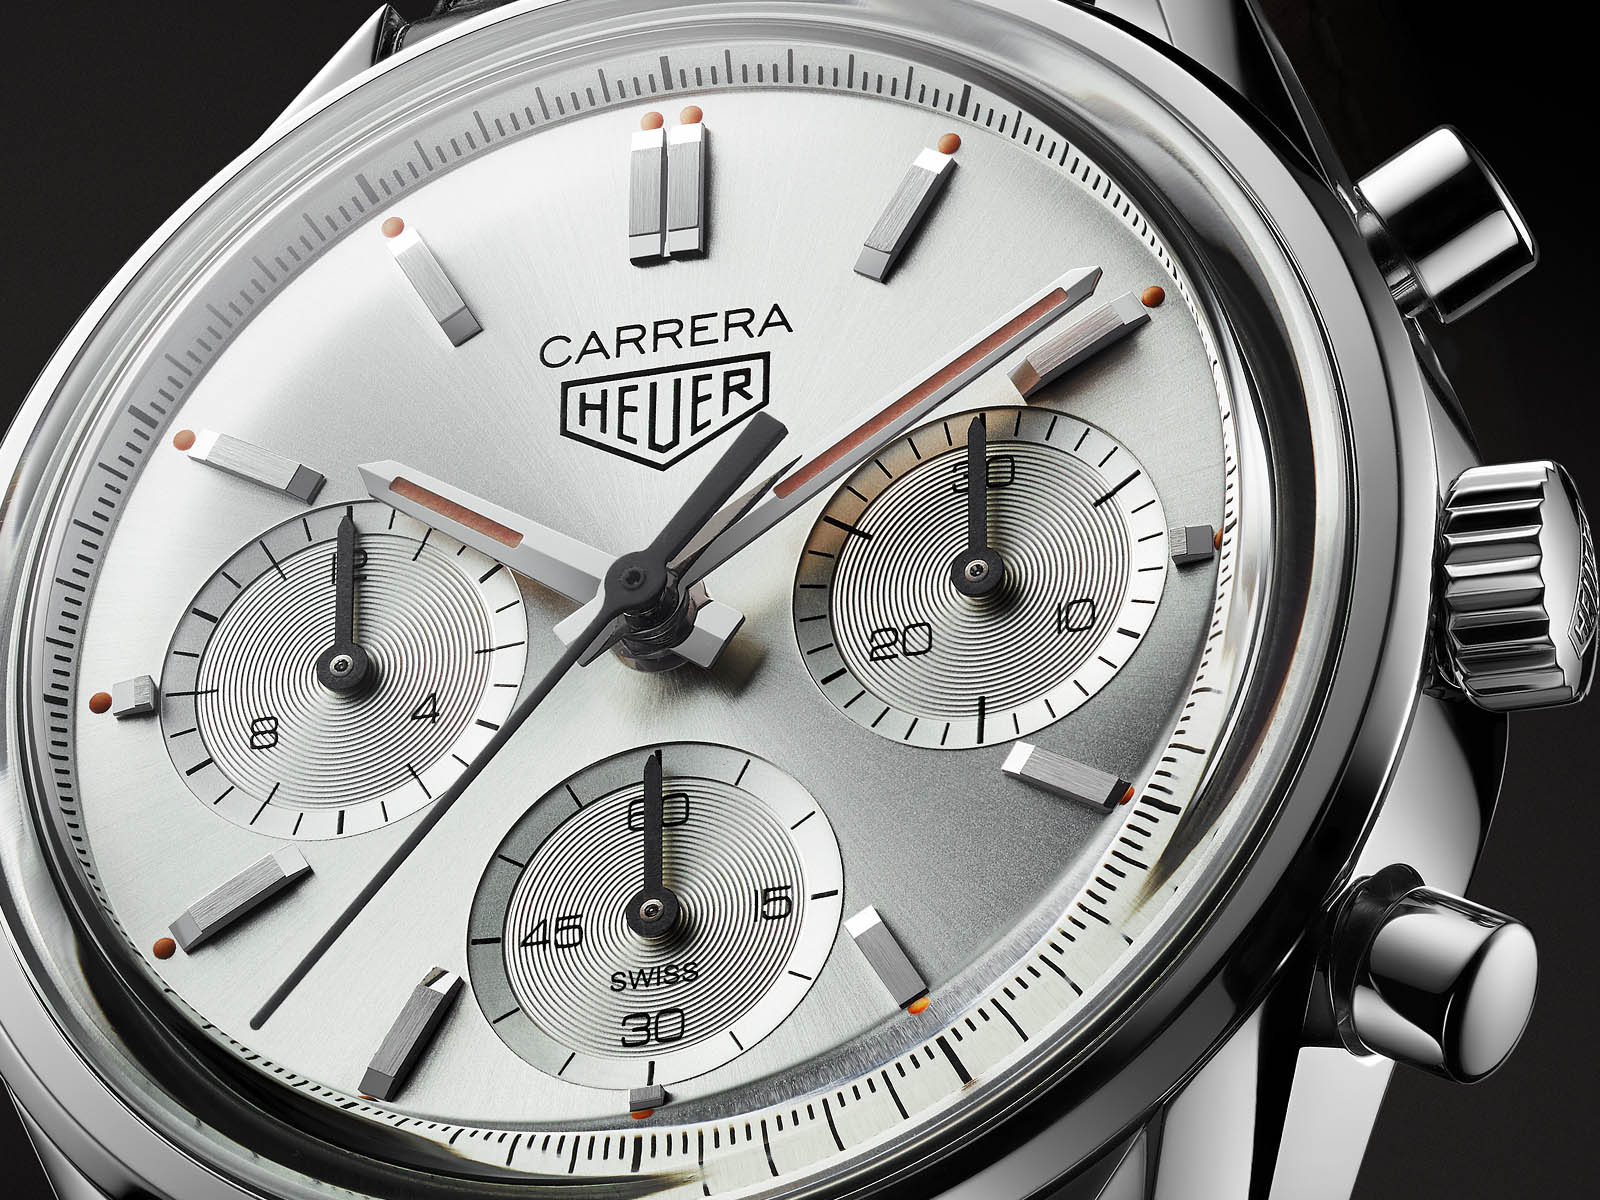 cbk221b-fc6479-tag-heuer-carrera-160-years-silver-limited-edition-3.jpg